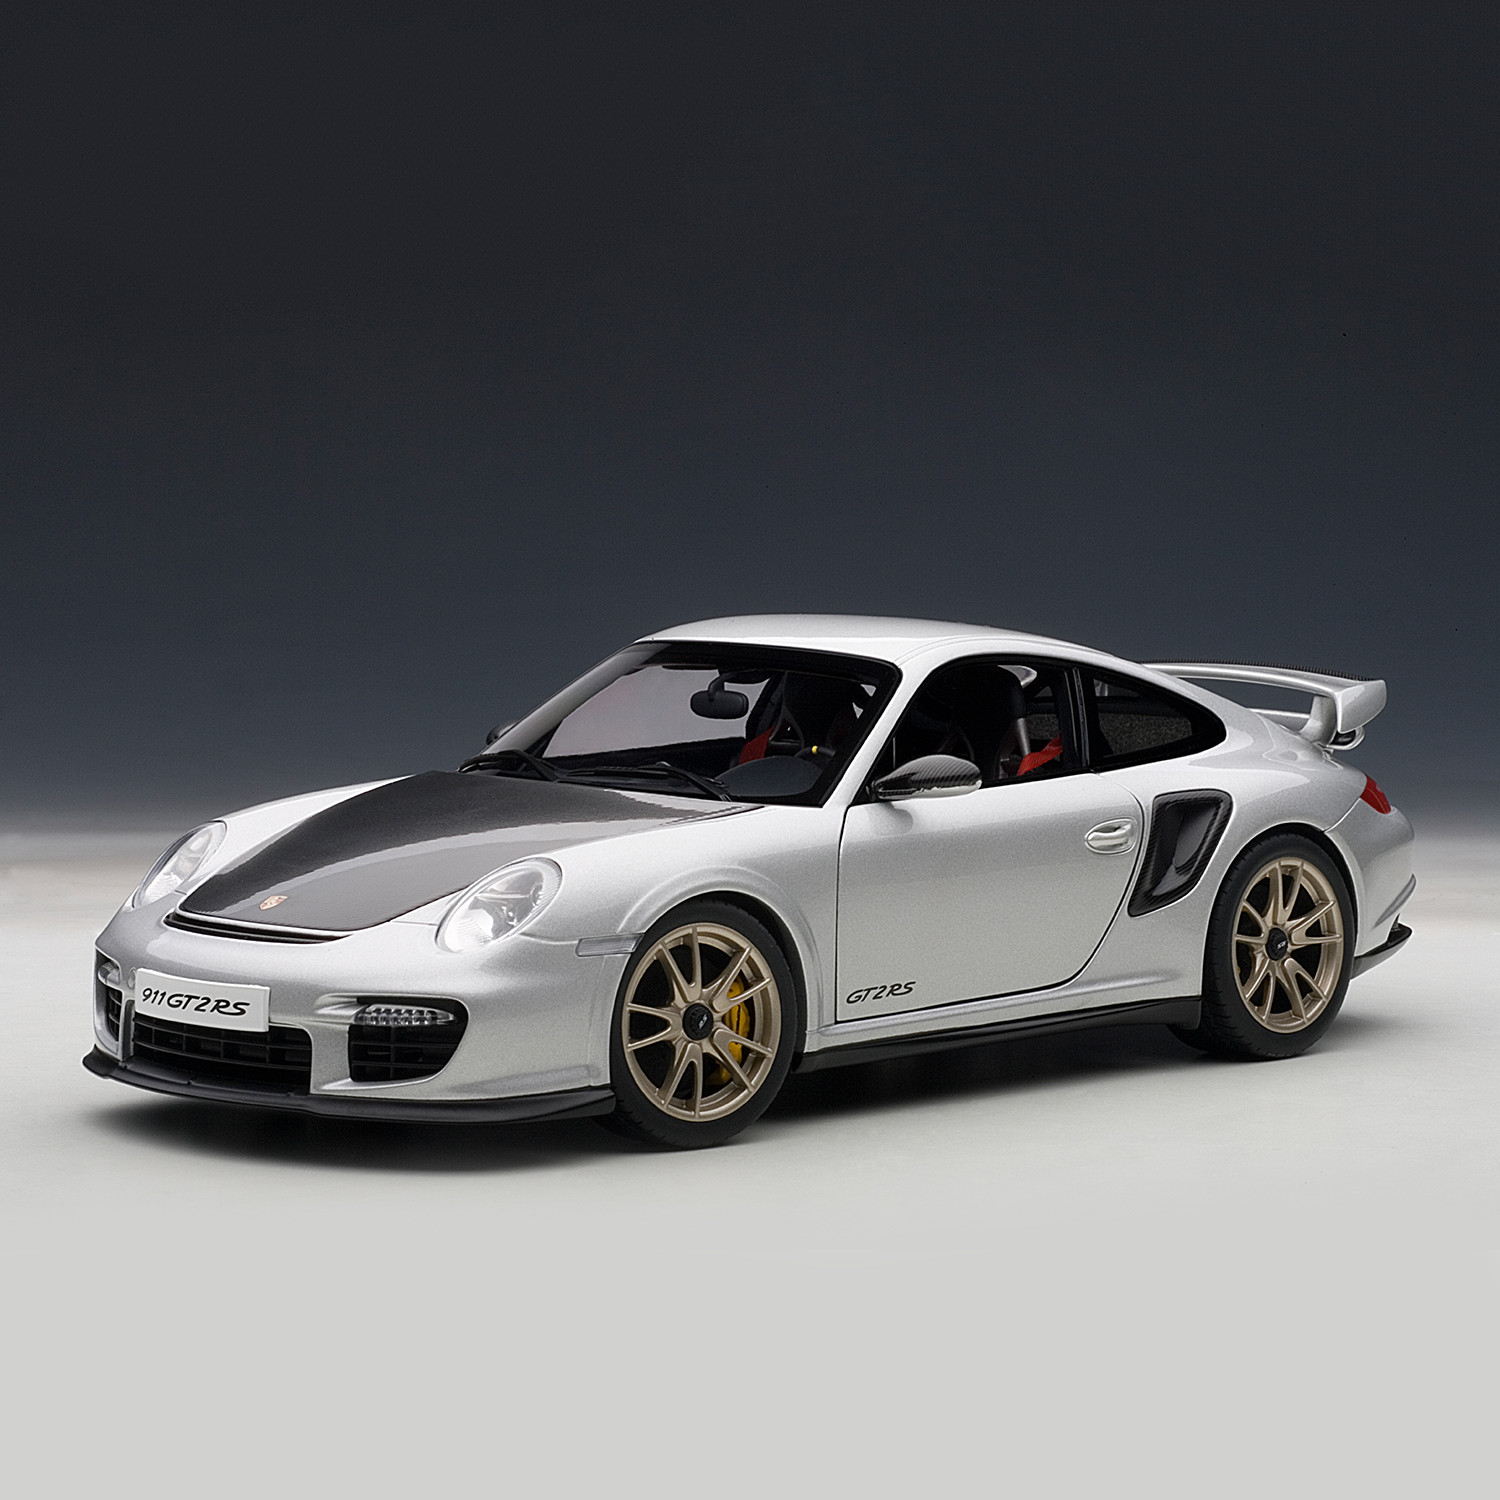 fc15f817aff7e757c1e2ae12a3e9b2fb_large Breathtaking How Many Porsche 911 Gt2 Were Made Cars Trend